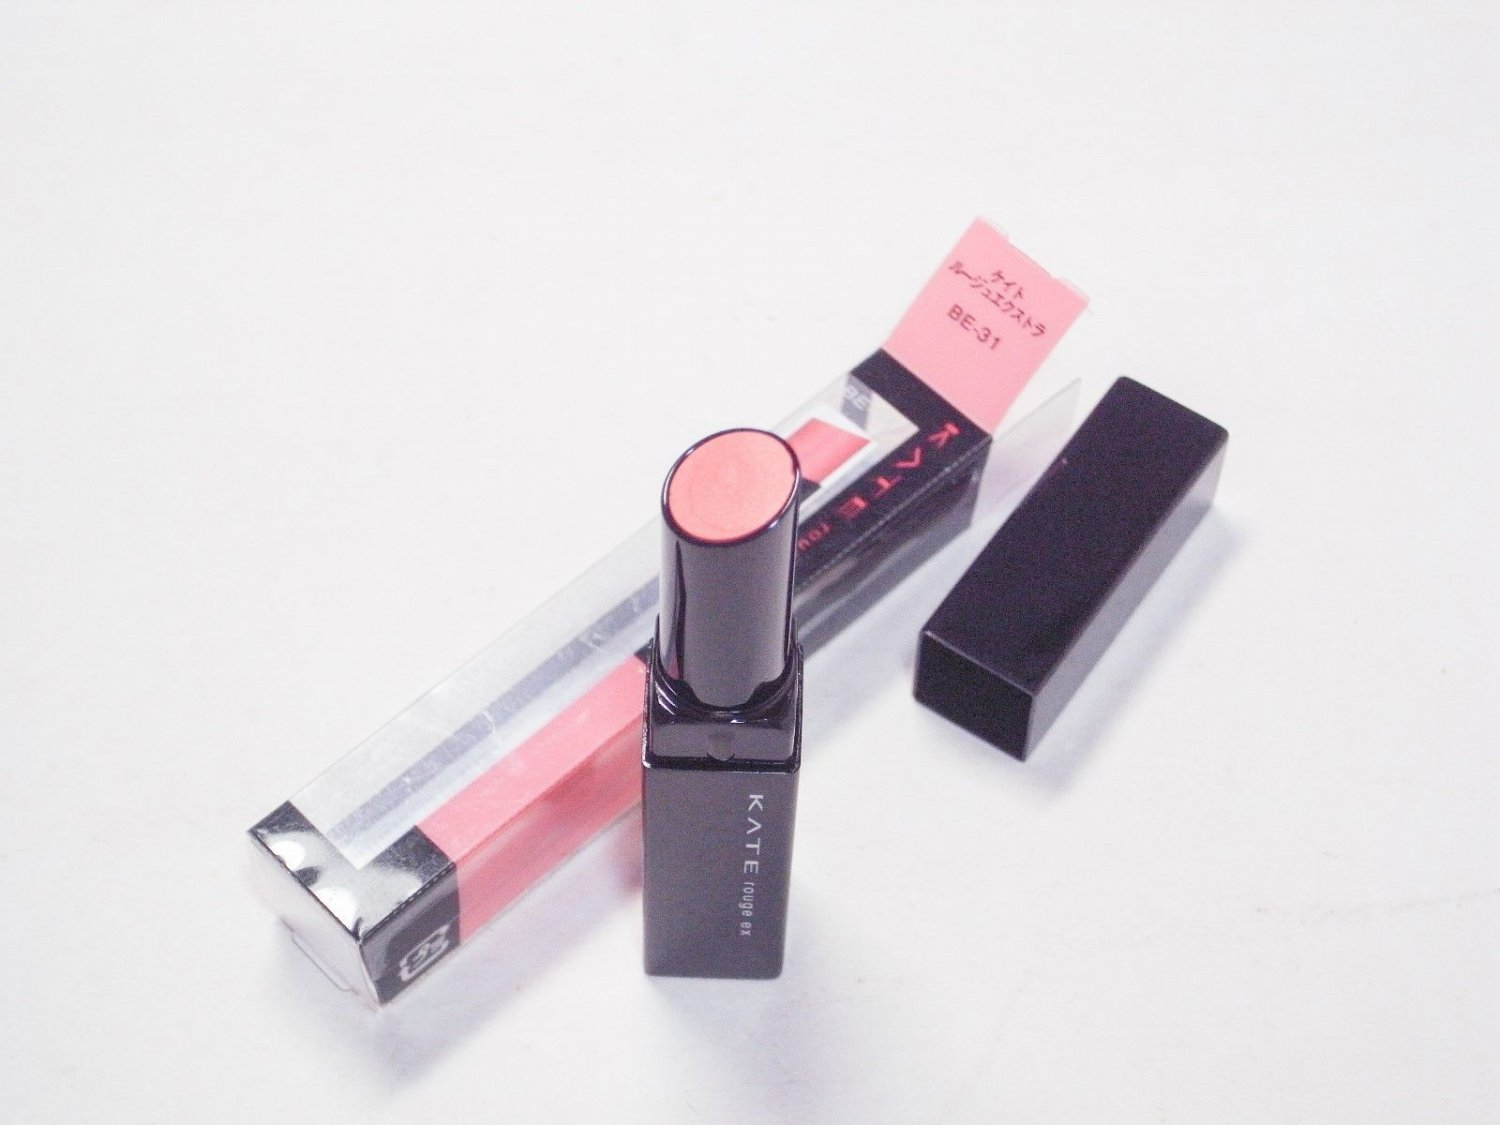 Kate Rouge EX lipstick BE-31 Kanebo new in box